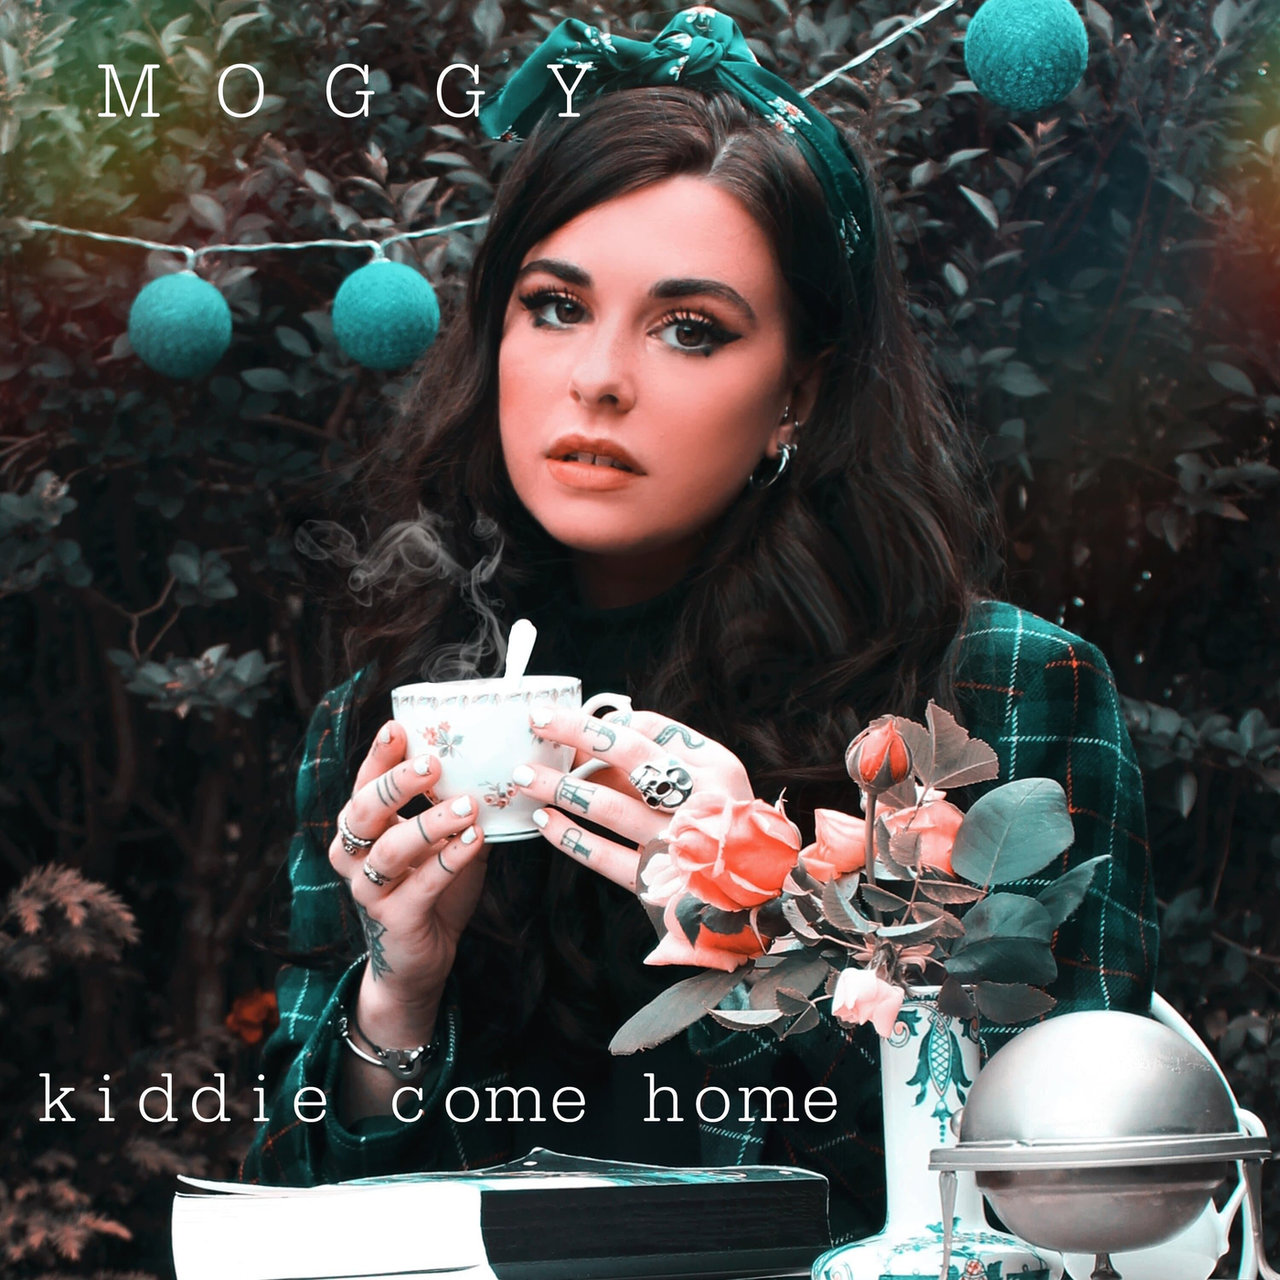 MOGGY - Kiddie Come Home